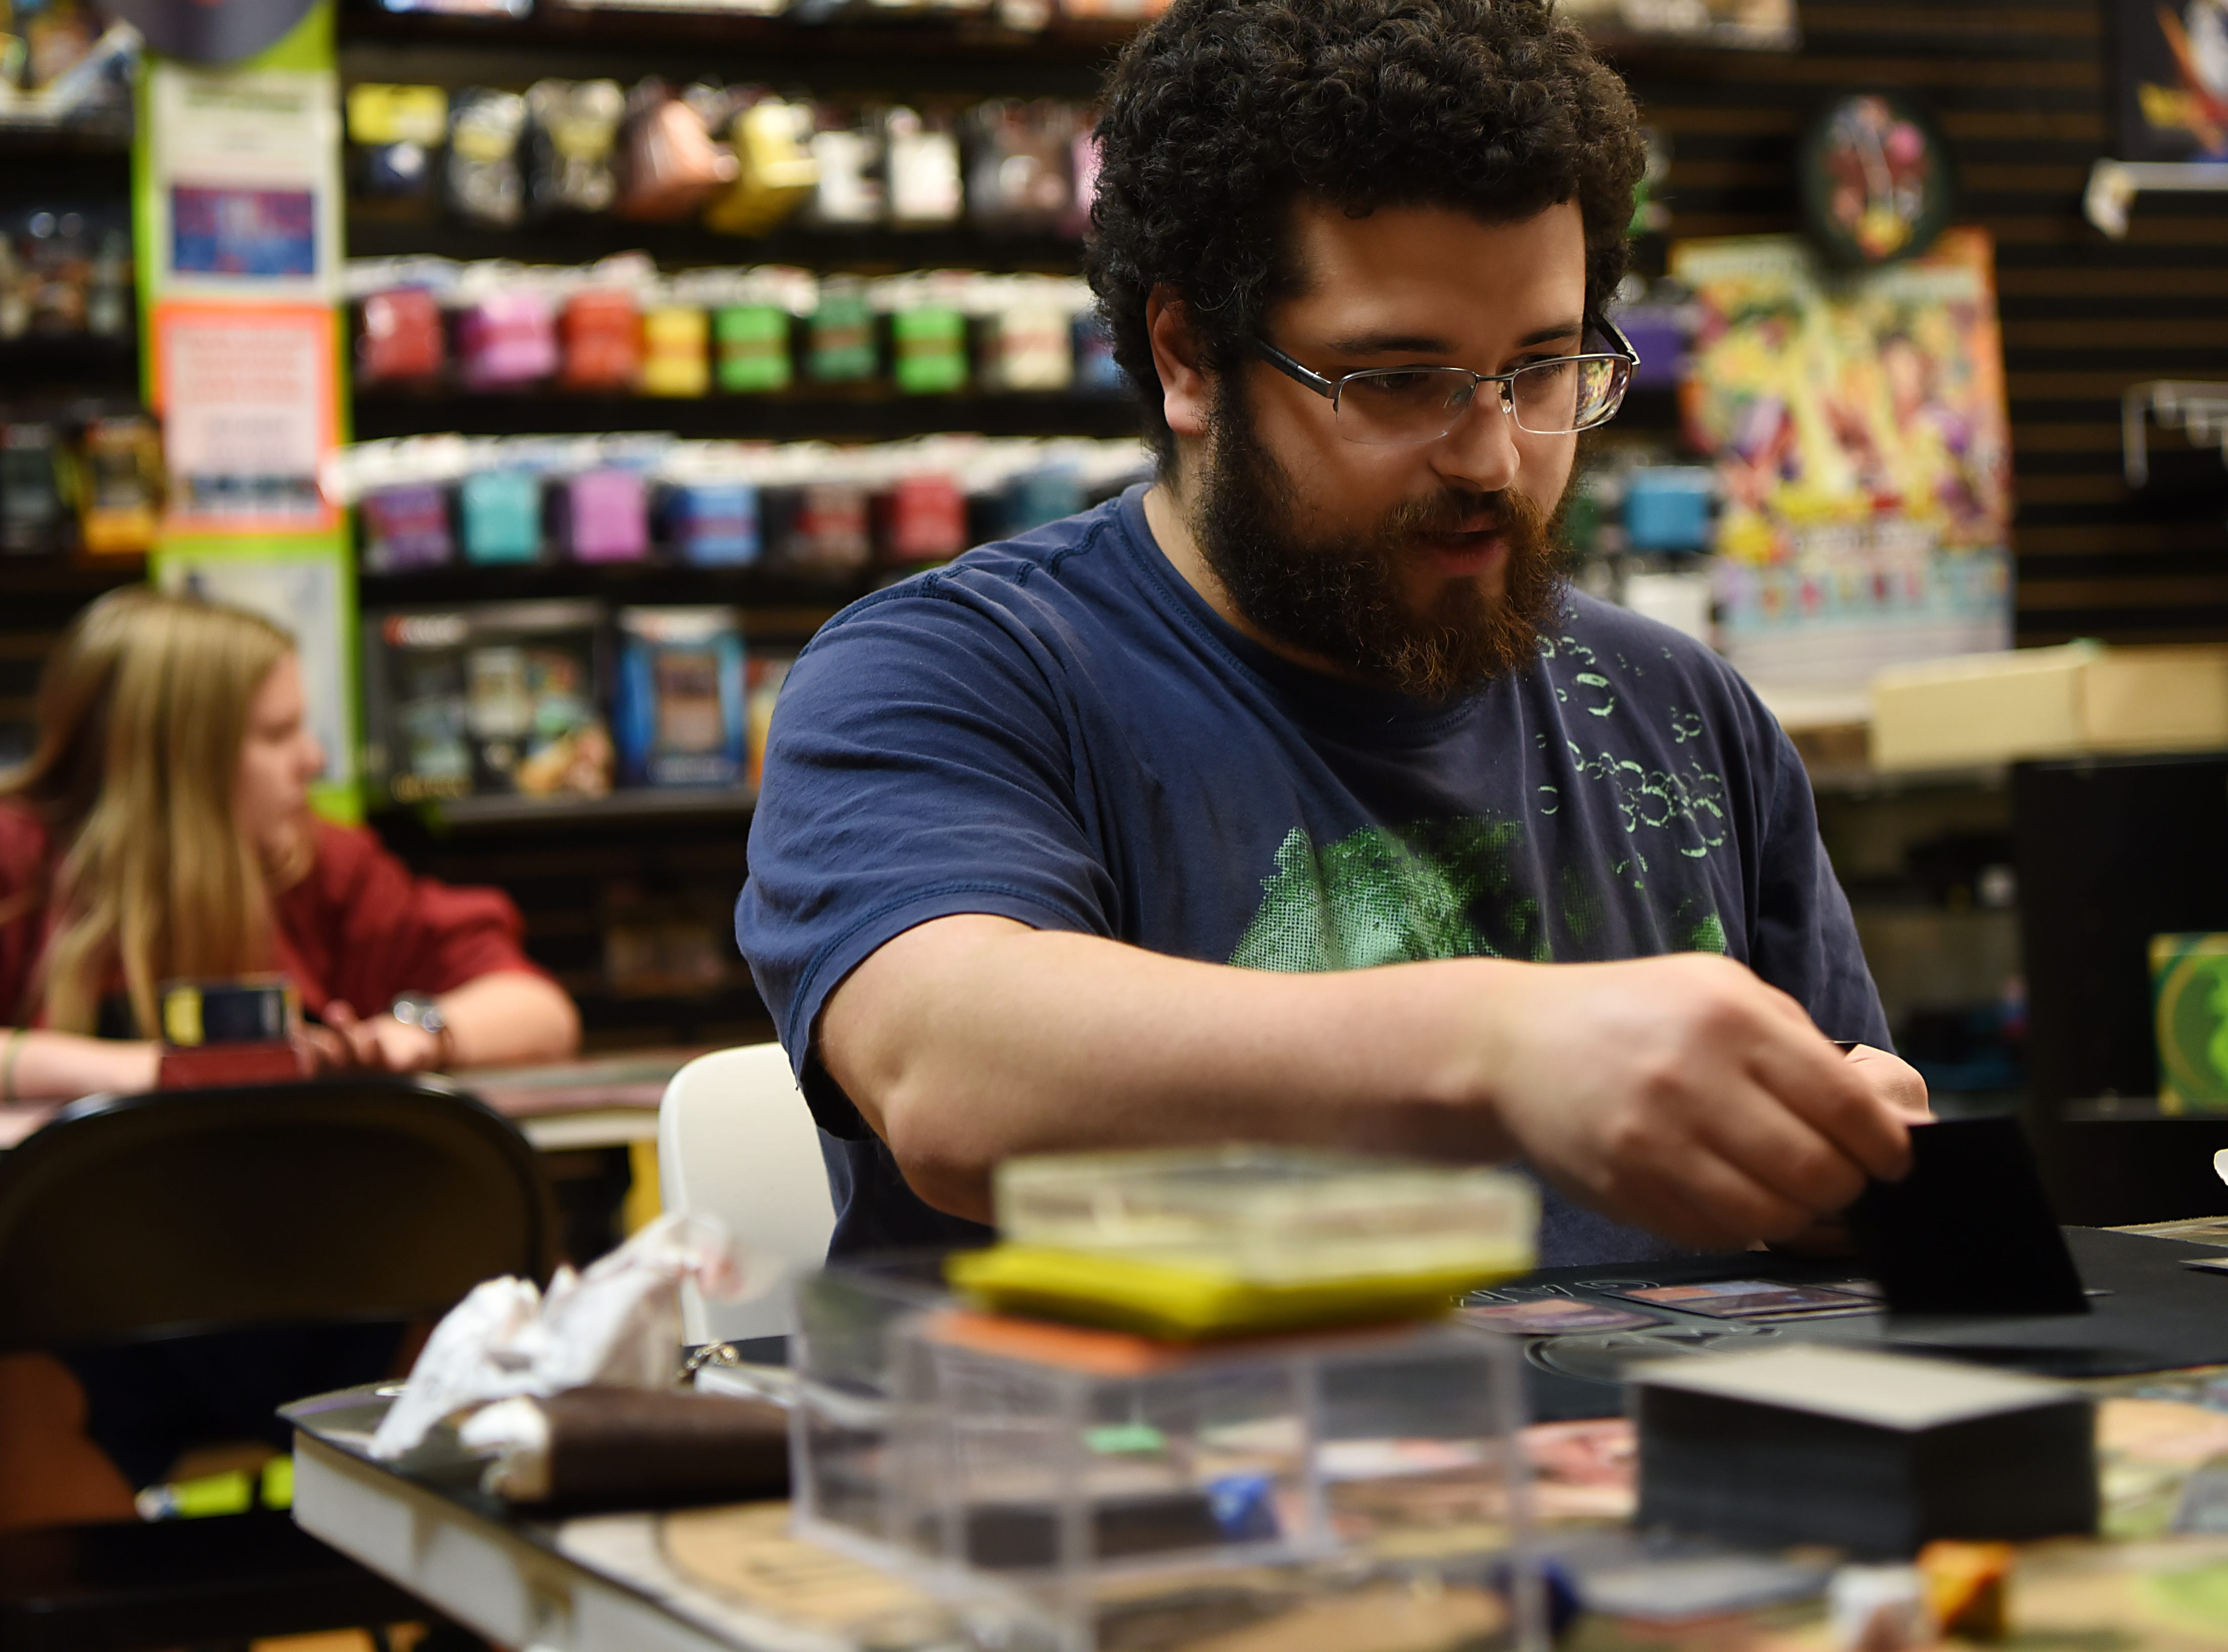 Kyle Capellan plays Magic: The Gathering at Level 1 Games in Pompton Plains on Friday November 30, 2018.